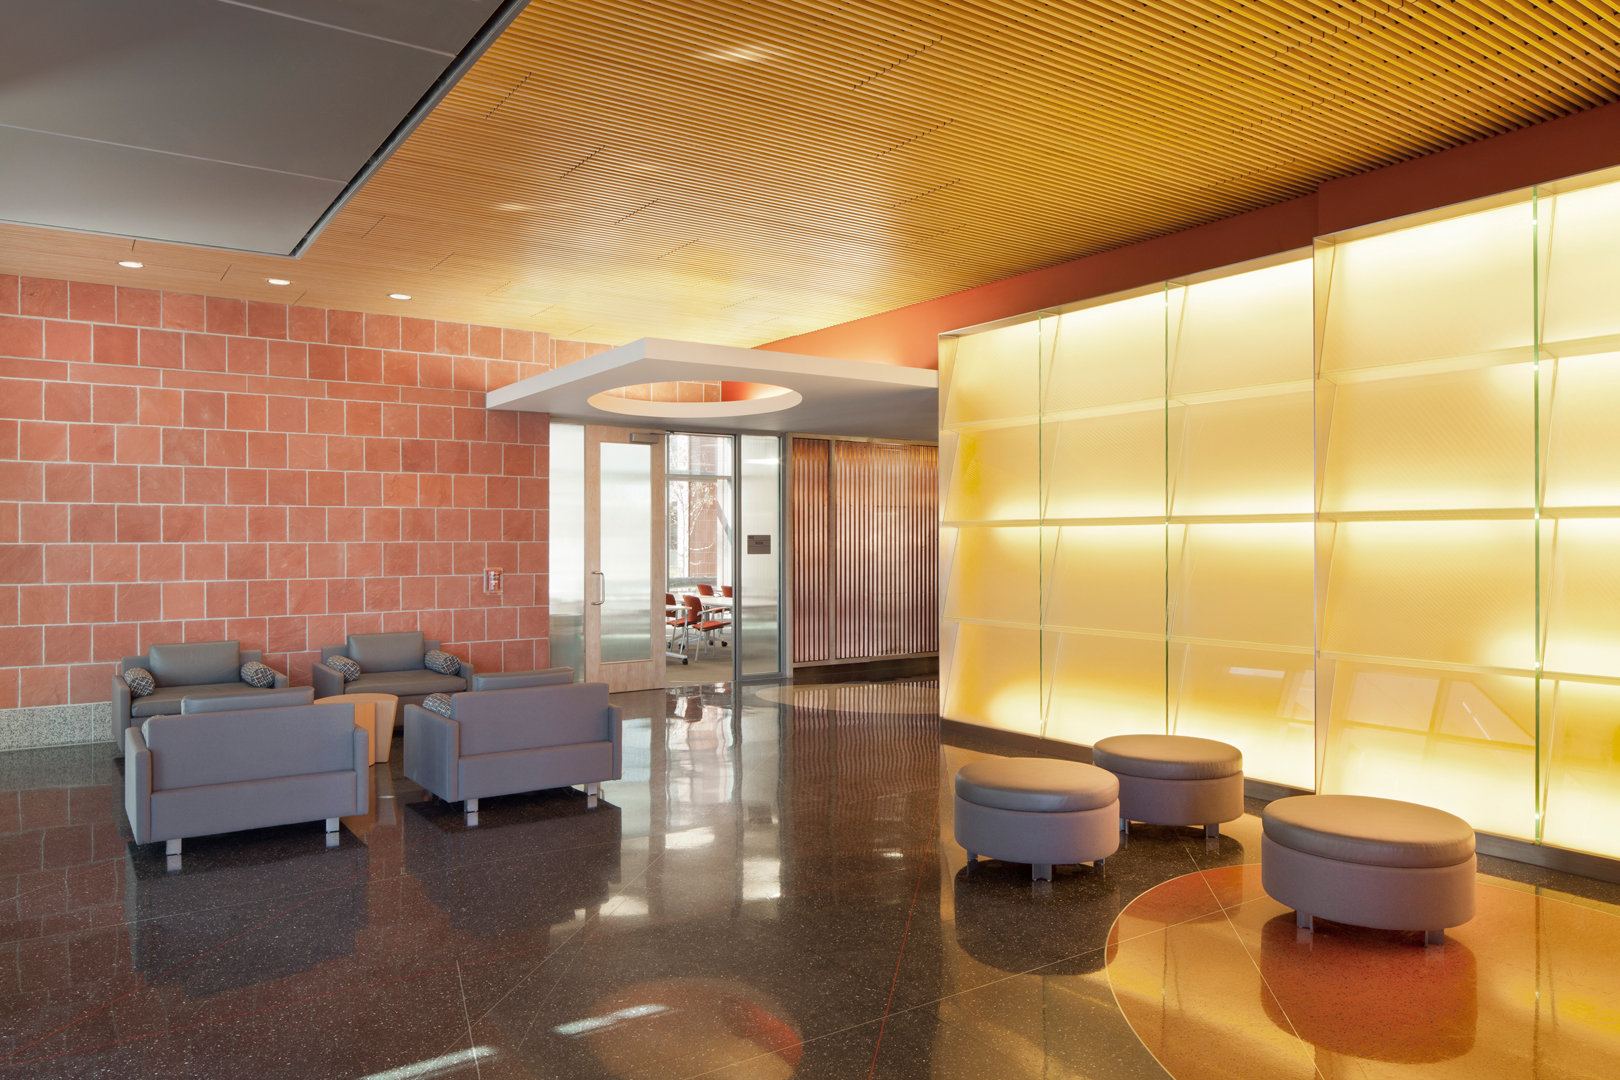 University of Arizona, MRB Lobby